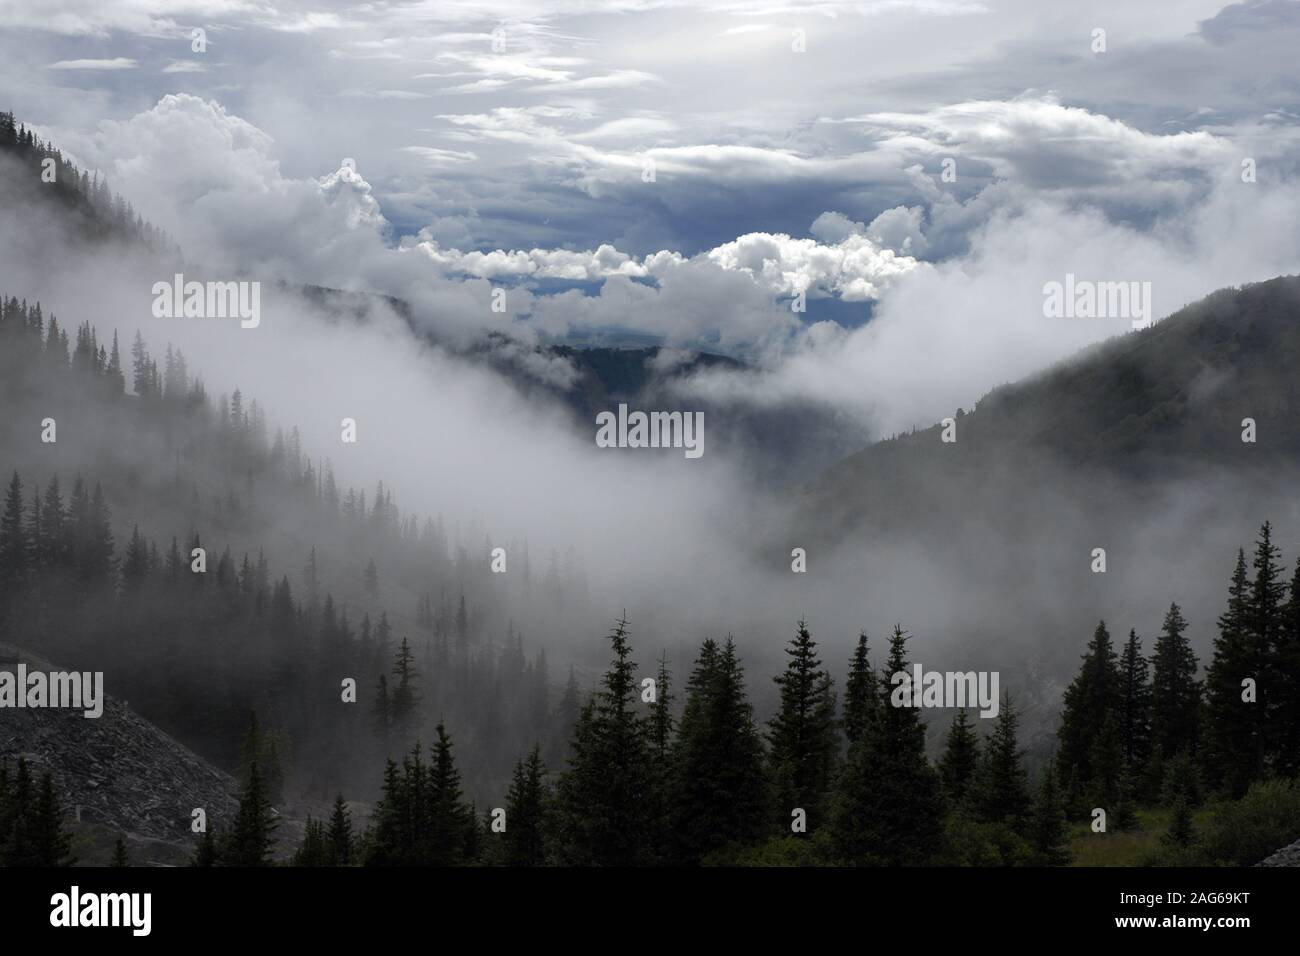 Breathtaking Scenery Of High Mountains And Green Trees Enveloped With Fog Under The Clouds Stock Photo Alamy Clouds mountains trees grass spruce fog